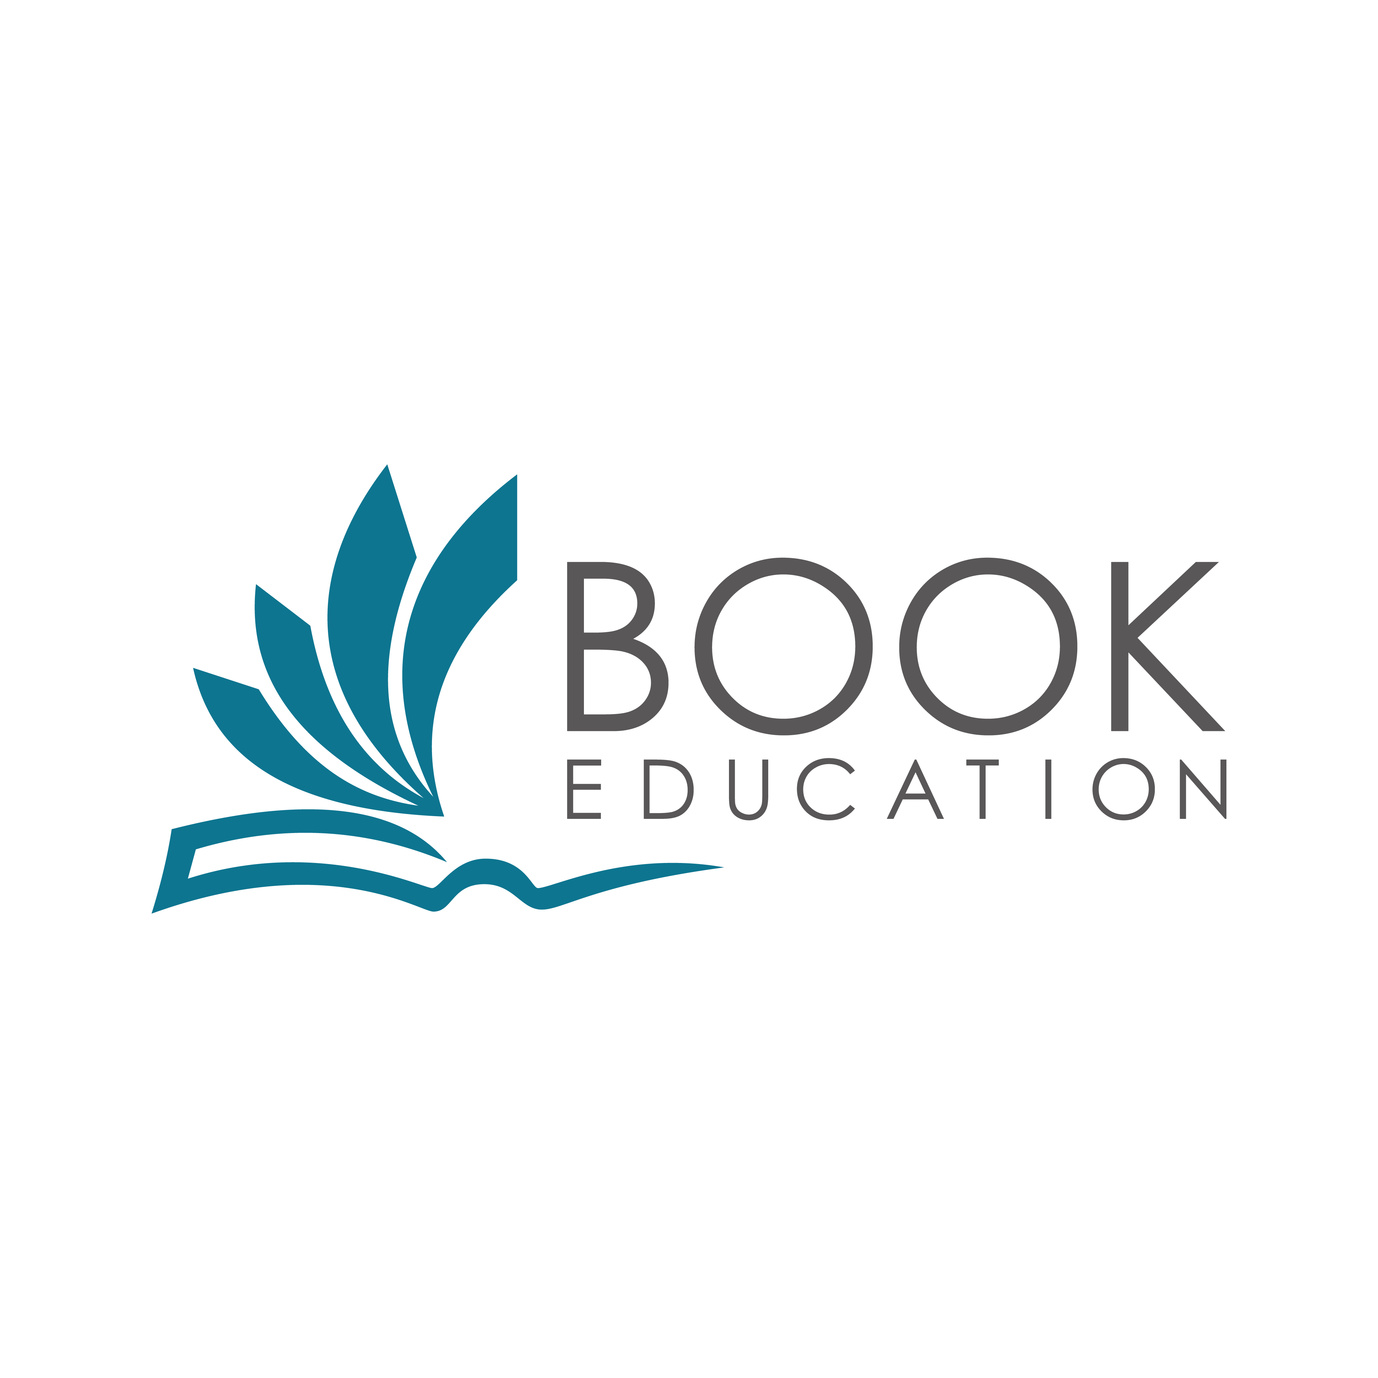 education-logo-design.jpg